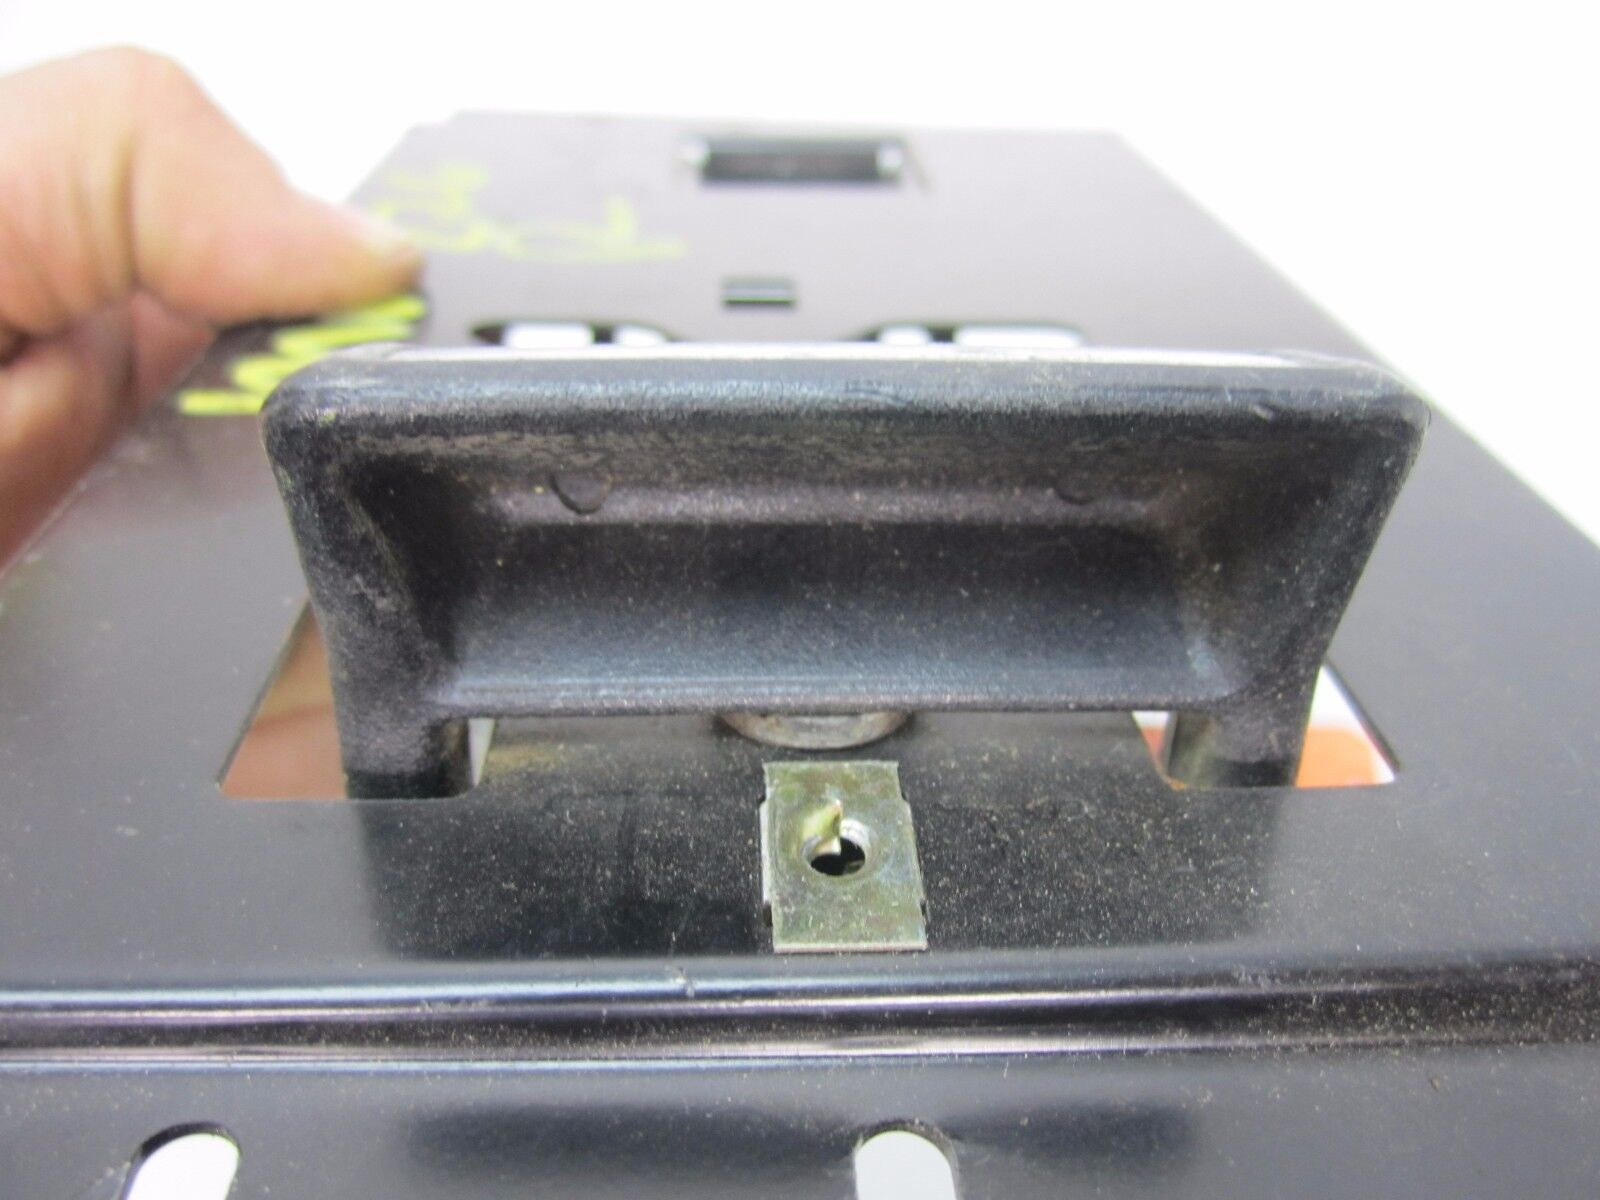 Used Saab Interior Door Panels And Parts For Sale Page 29 900 Se Turbo Electric Seats Partrequestcom Inner Handle Convertible Passenger R Rh Rf Right In Side Car Pull